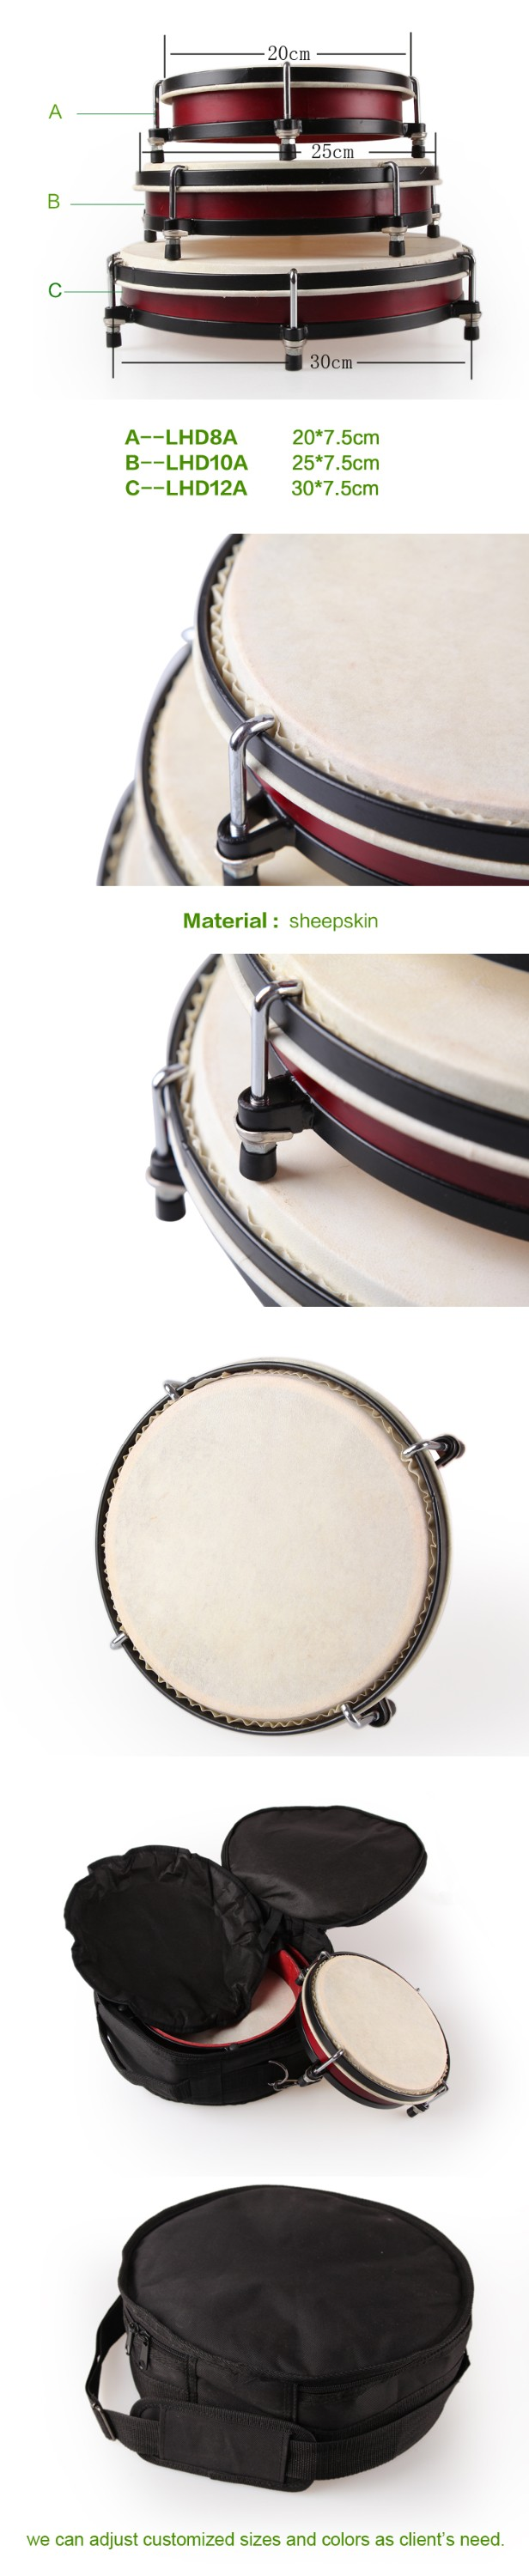 Hand drum set with nylon bag music percussion set instrument